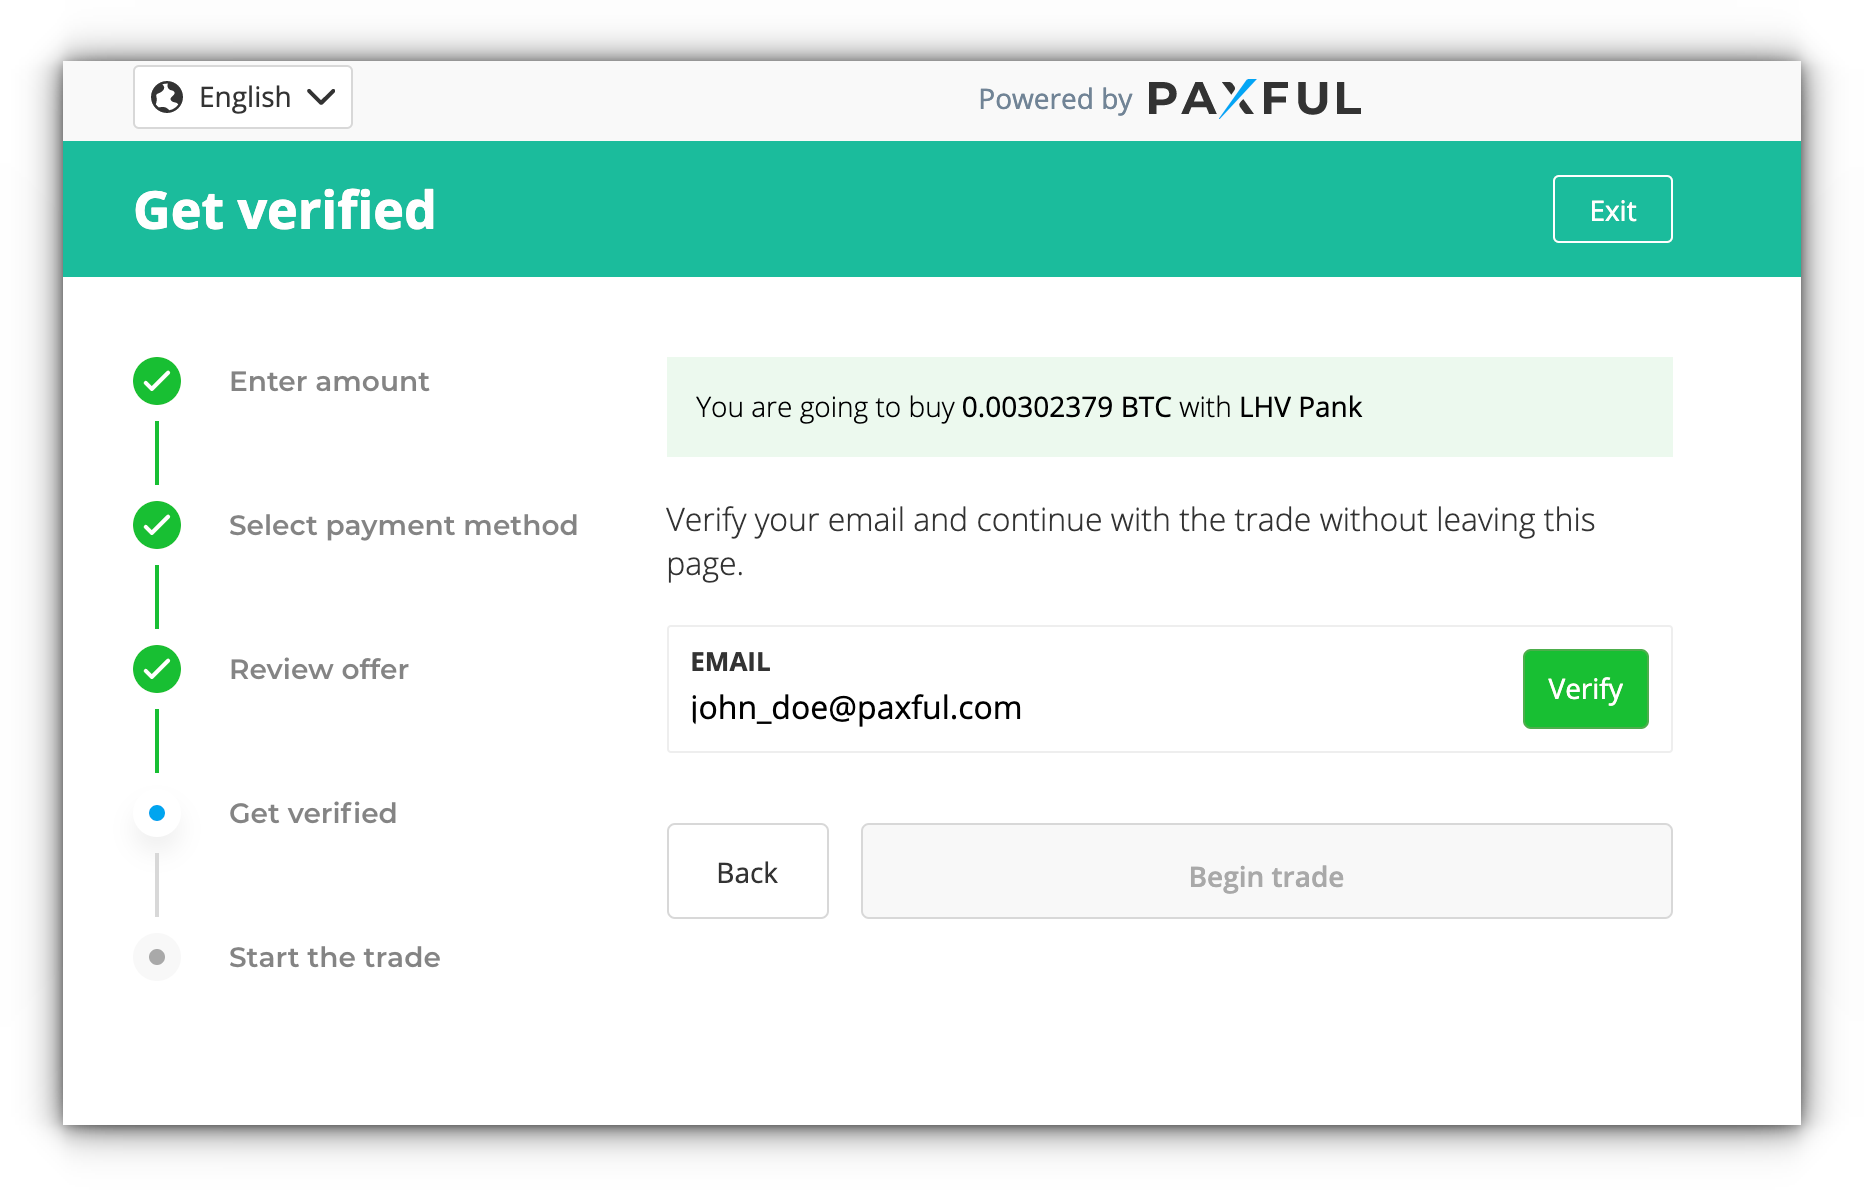 Paxful_Pay_New_User_Checkout_Step_6_-_Email.png